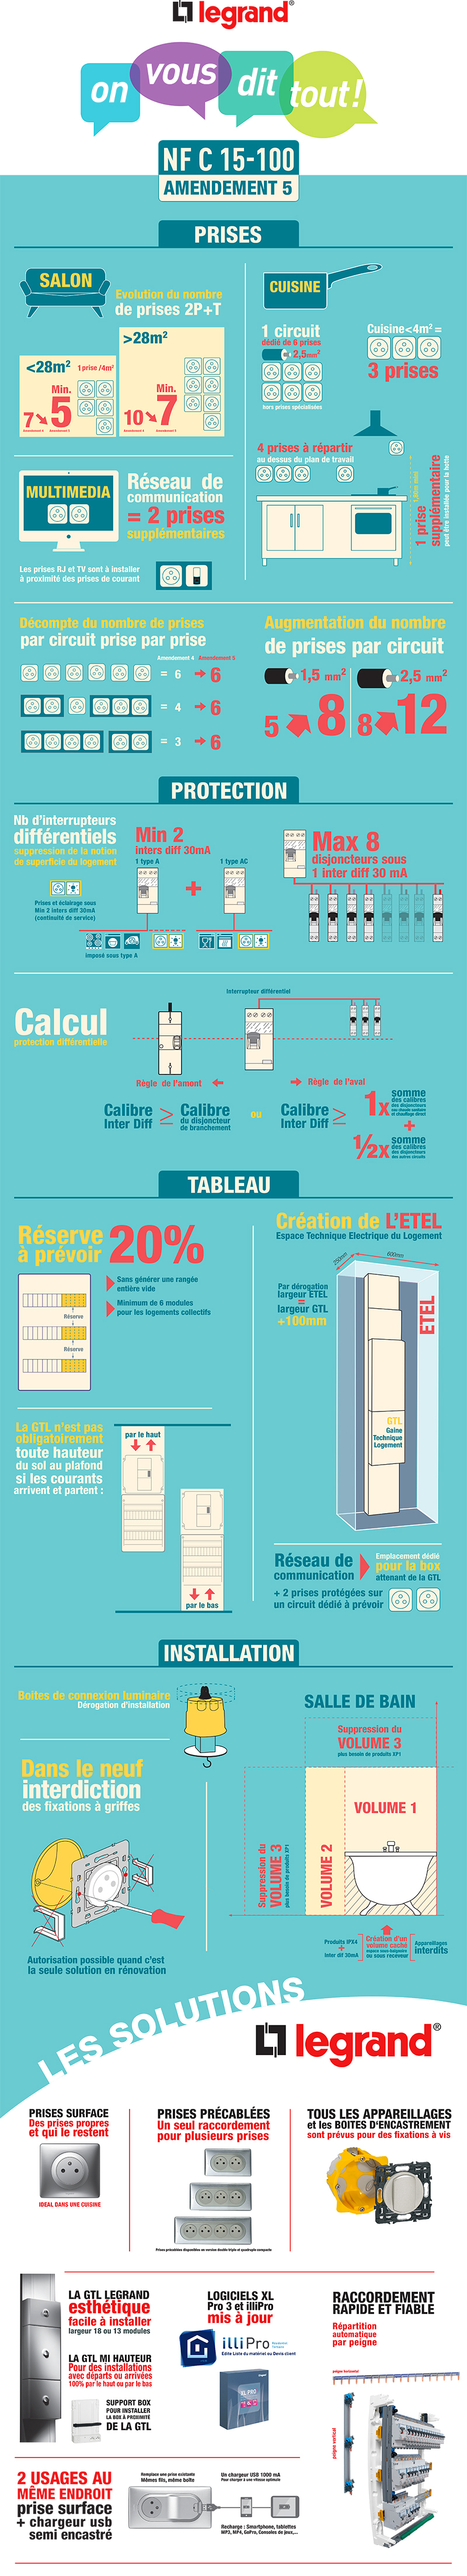 infographie legrand norme NFC 15 100